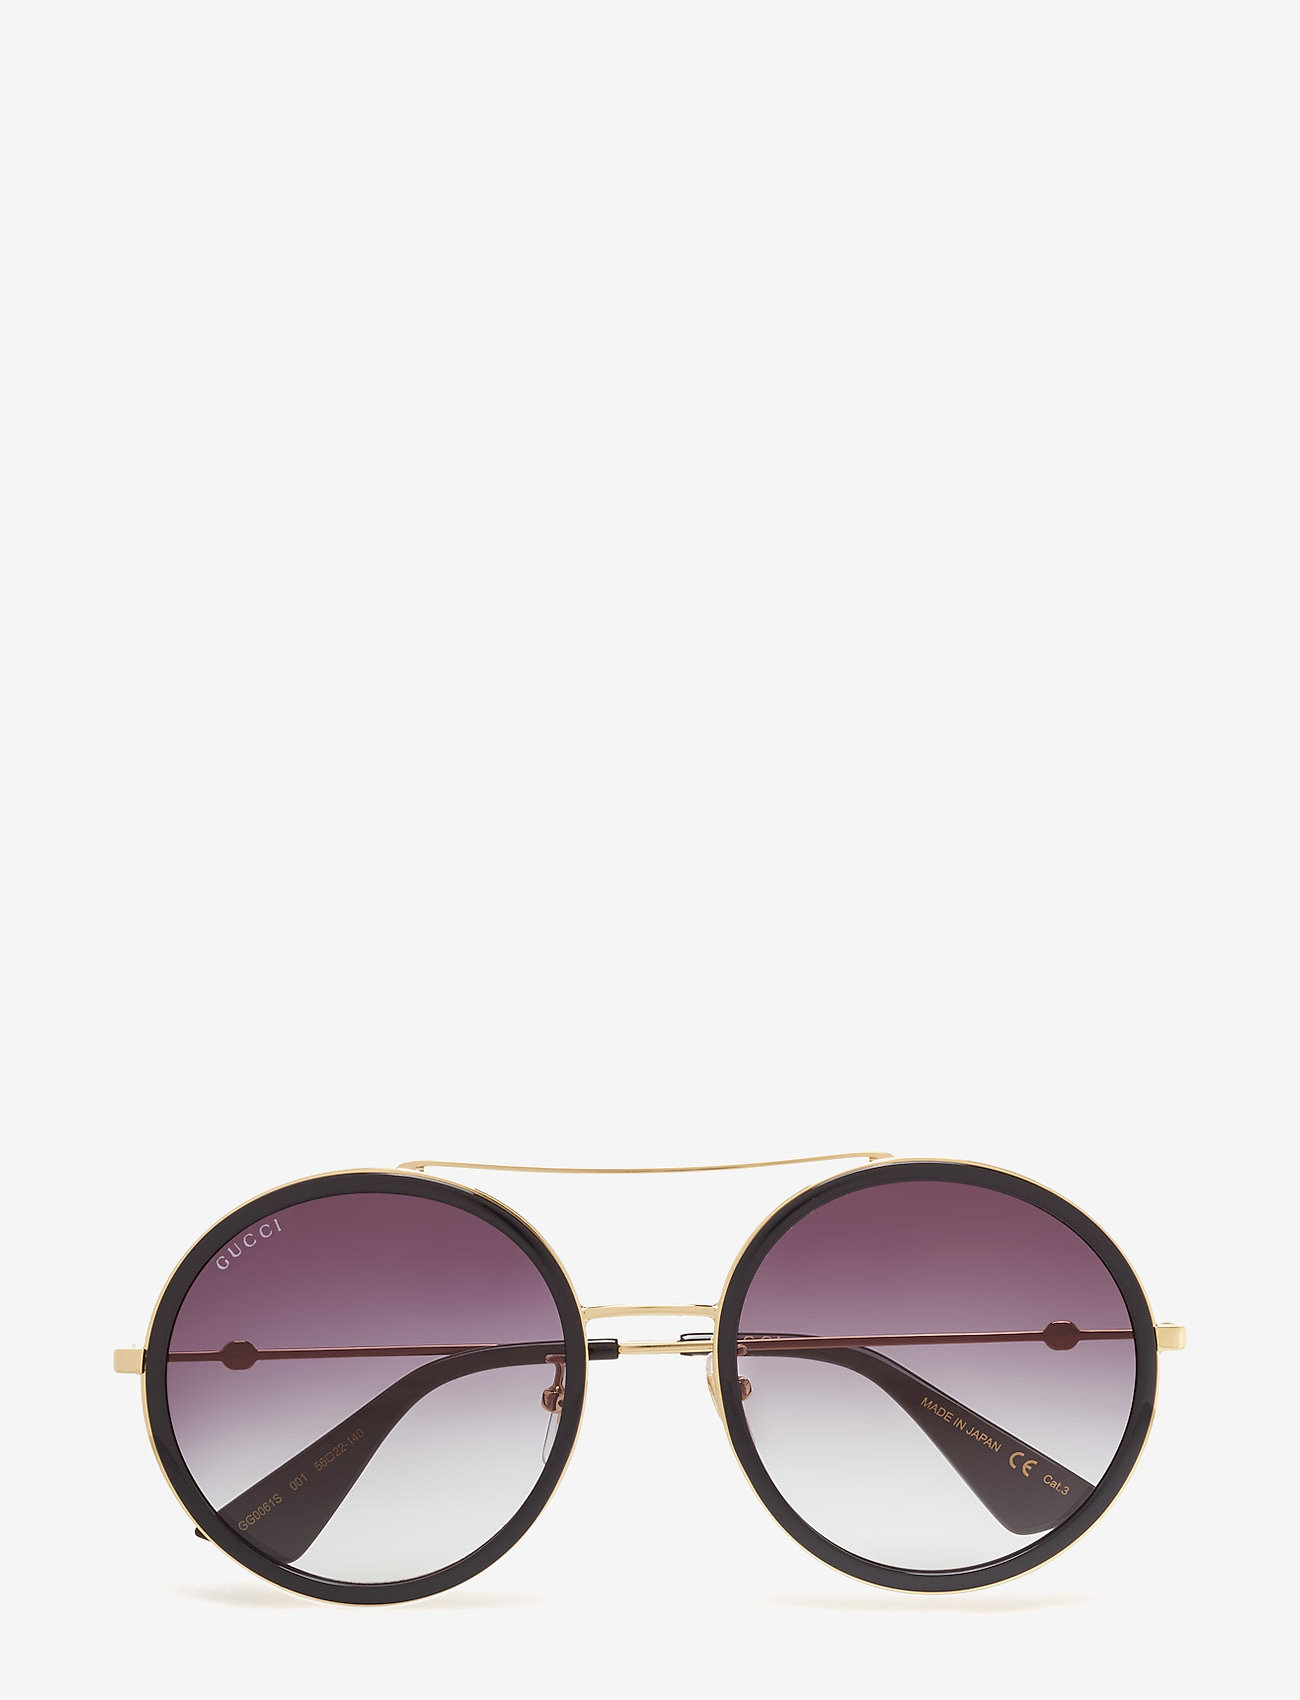 Gucci Sunglasses - GG0061S - round frame - gold-gold-grey - 0